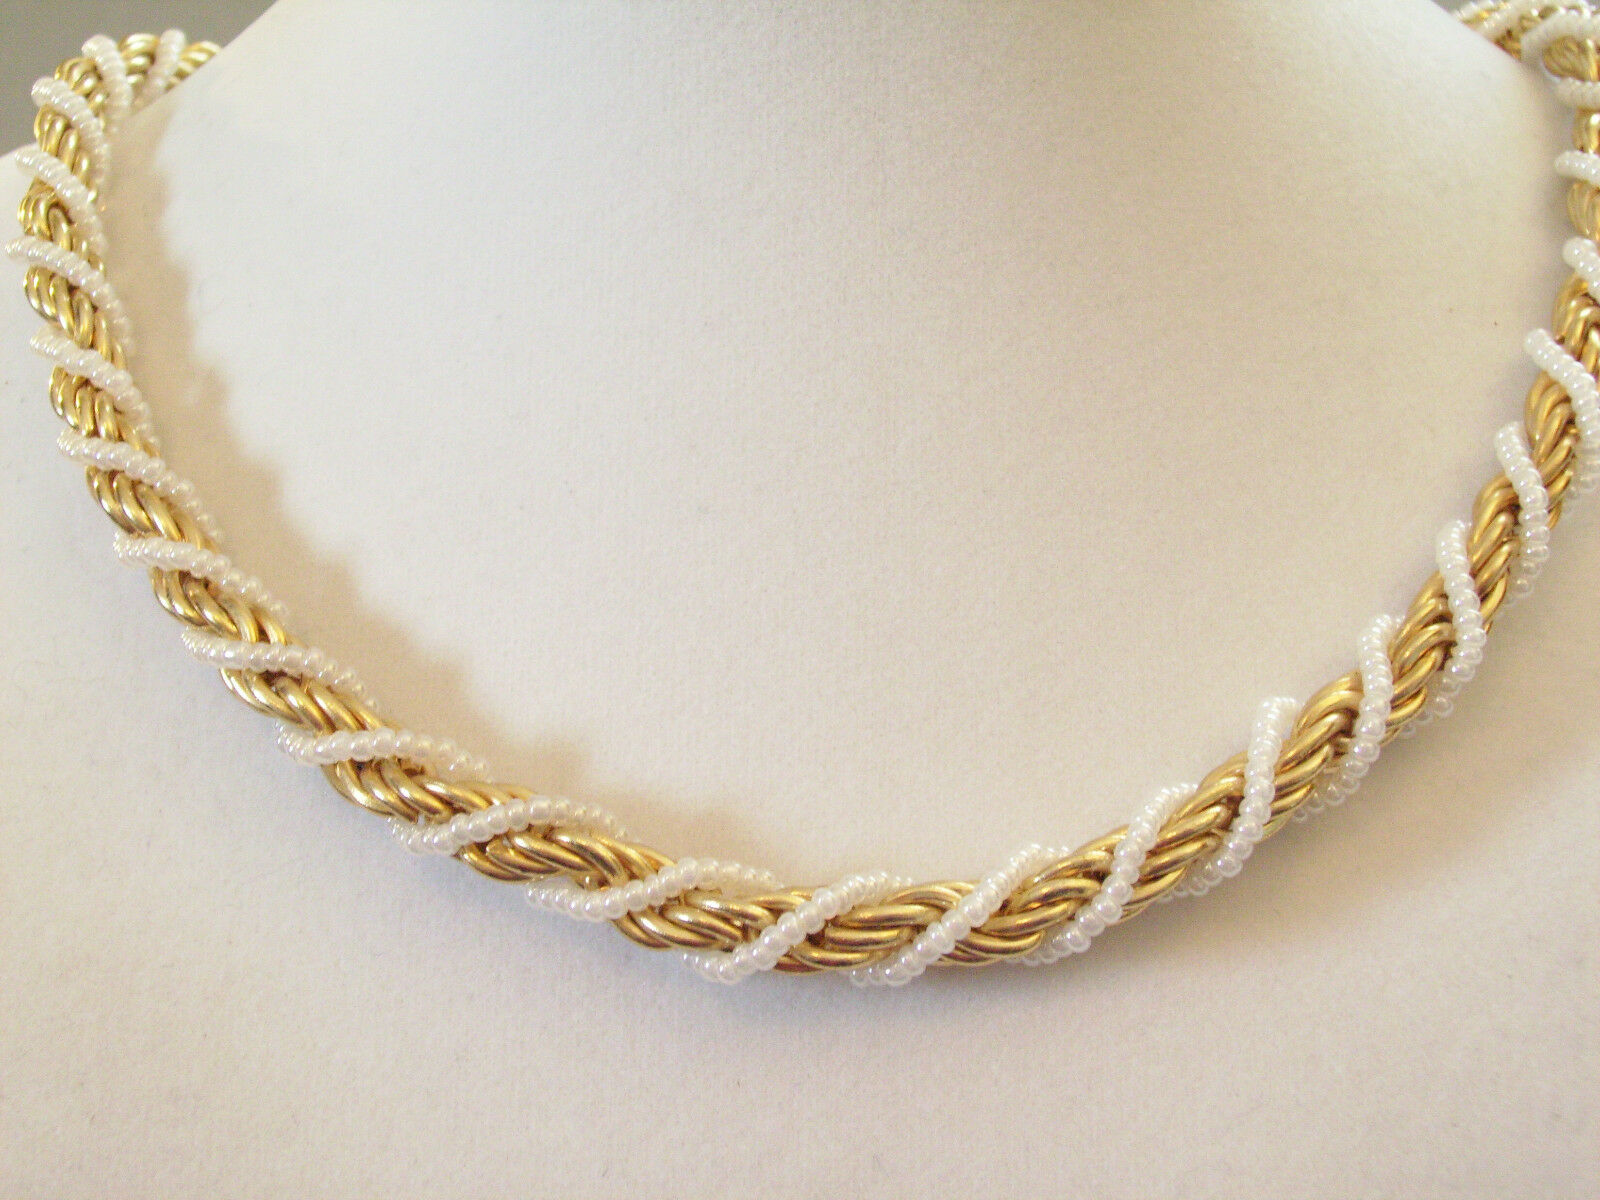 White Bead Wrapped Rope Chain Necklace Torsade Gold Iridescent Signed K Vintage